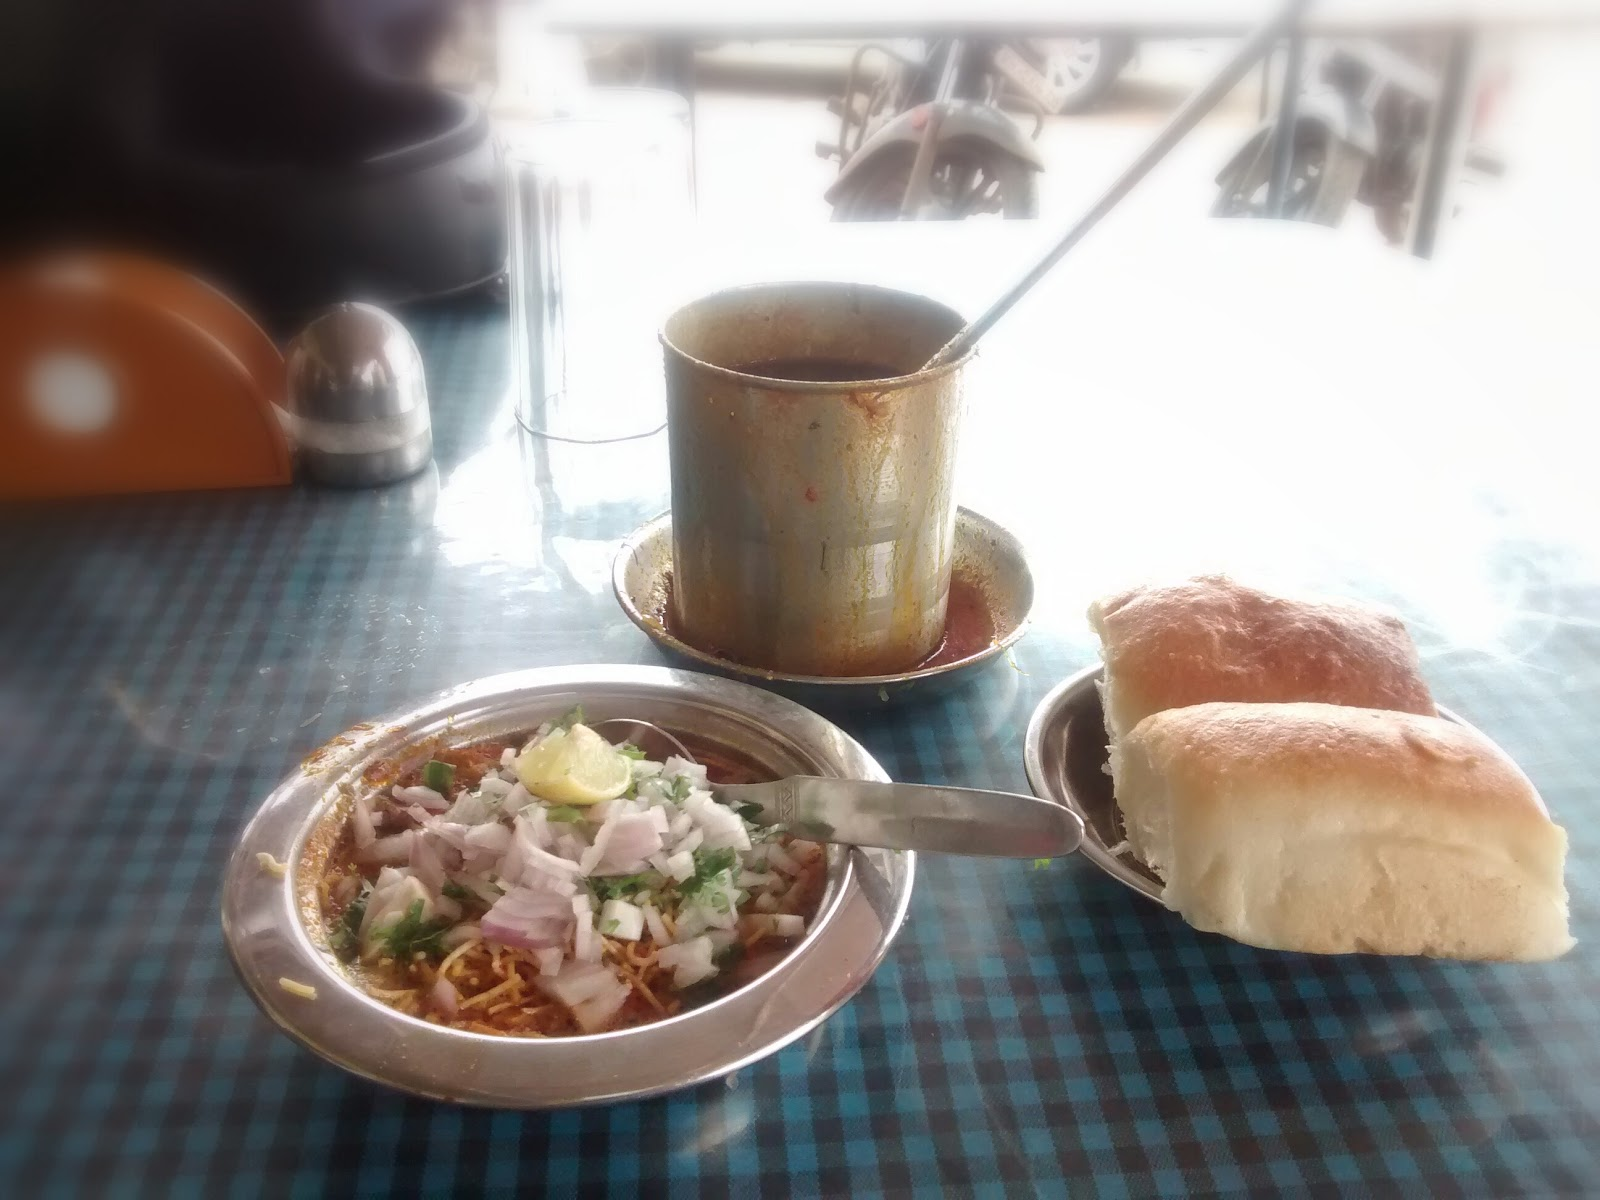 Bike ride from Pune - Ahmednagar - Pune Misal pav